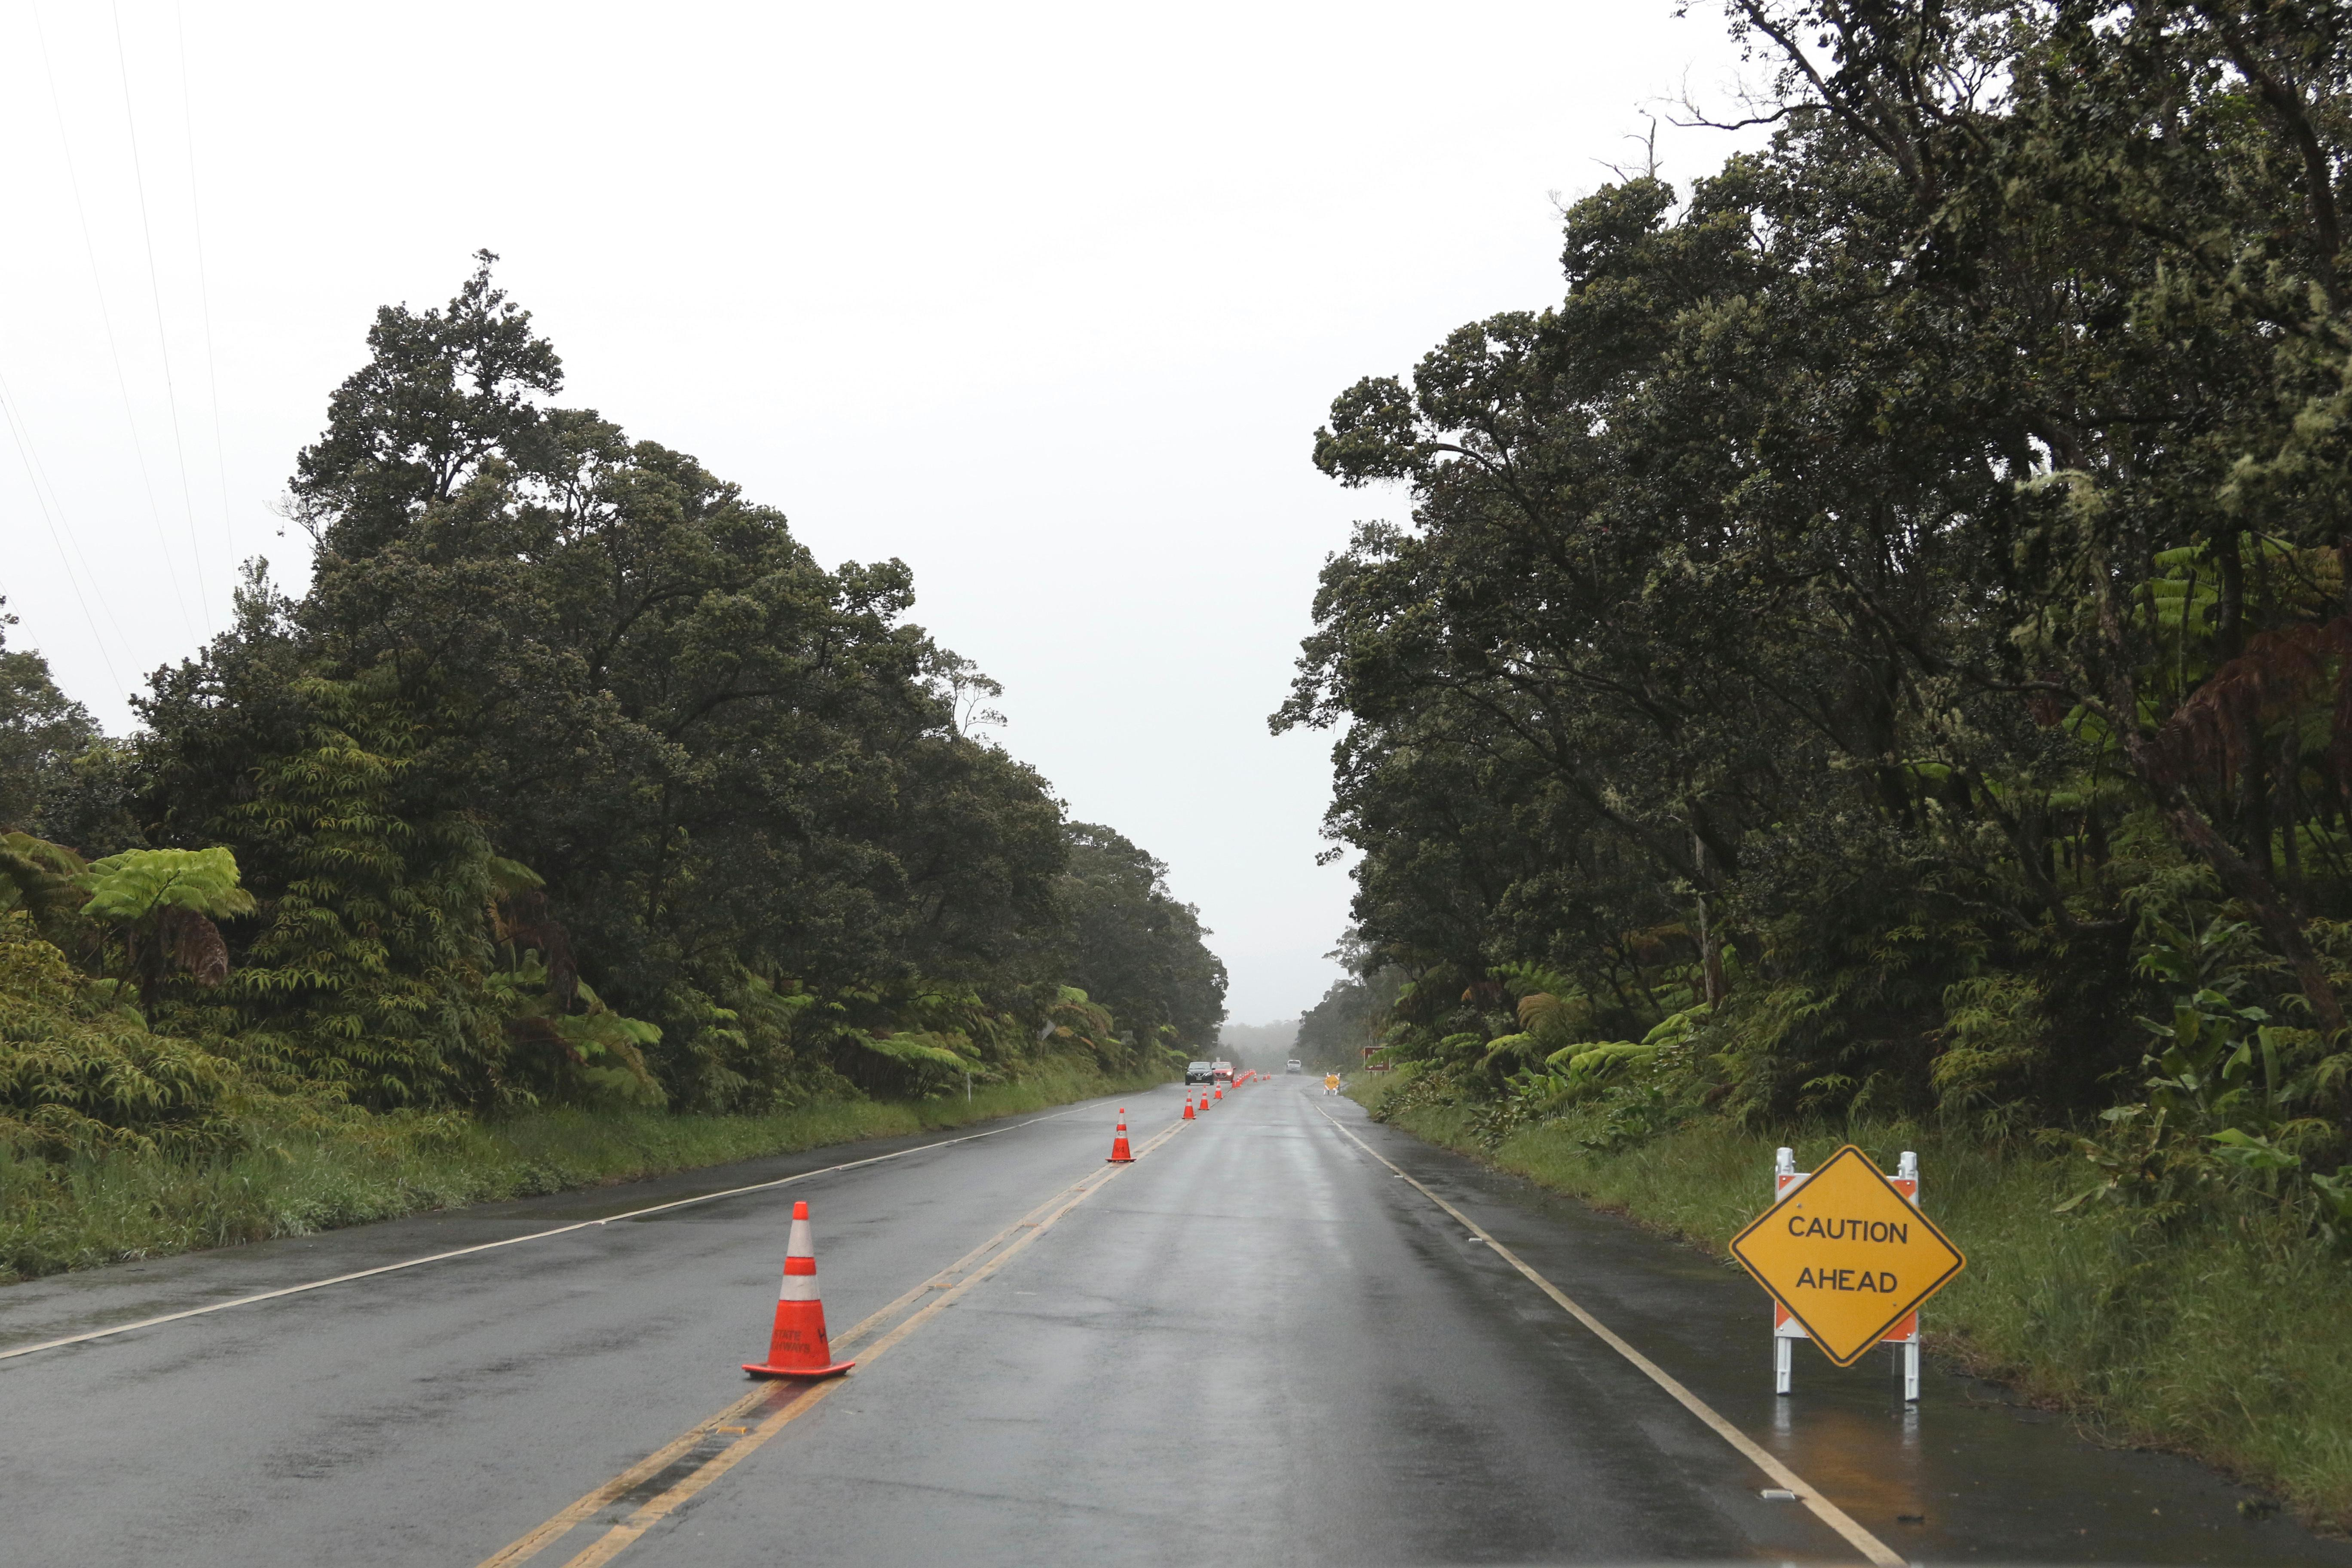 Cones and signs warn of cracks in the road near the entrance to Hawaii Volcanoes National Park, Thursday, May 17, 2018, near Volcano, Hawaii. (AP Photo/Caleb Jones)